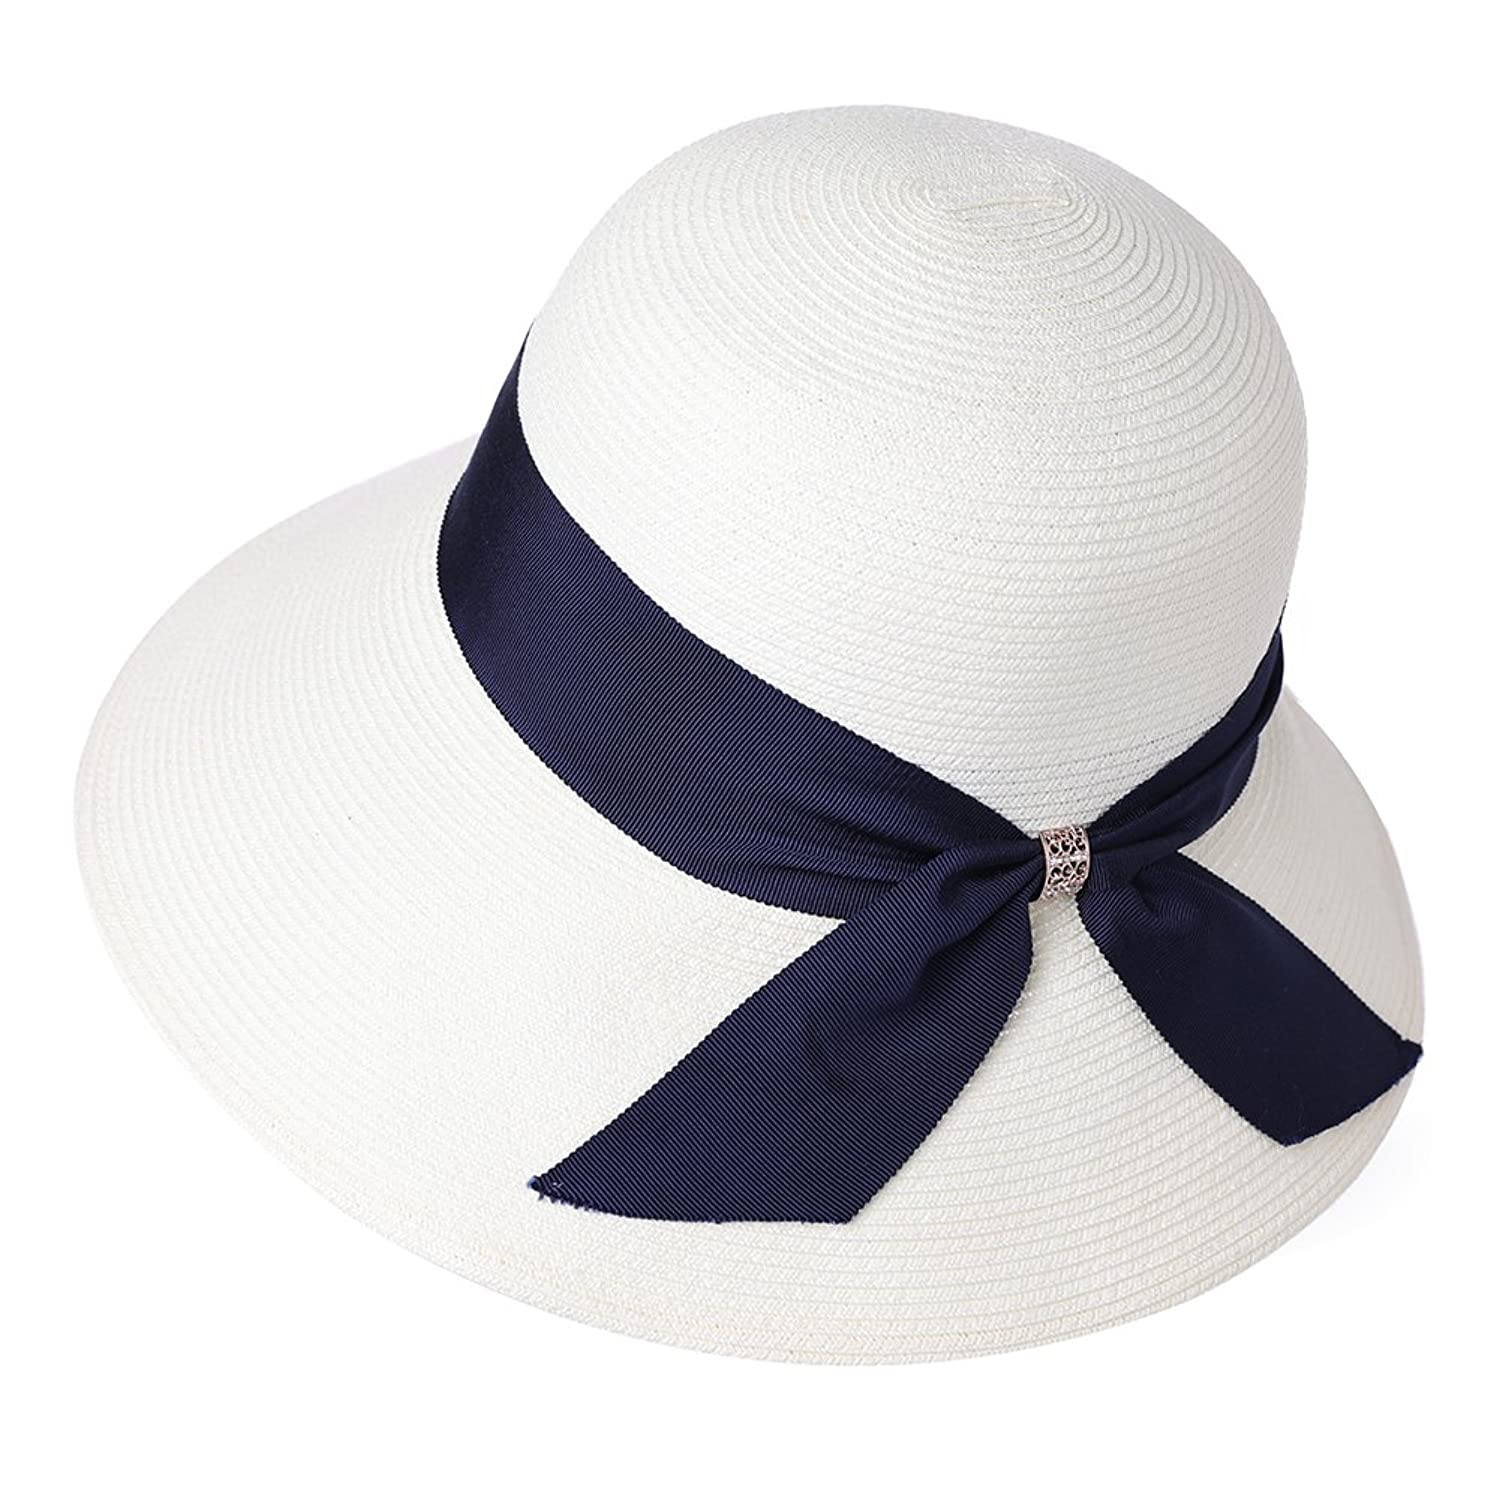 1930s Style Hats | Buy 30s Ladies Hats SiggiHat Packable UPF Straw Sunhat Women Summer Beach Wide Brim Fedora Travel Hat Bowknot $19.99 AT vintagedancer.com